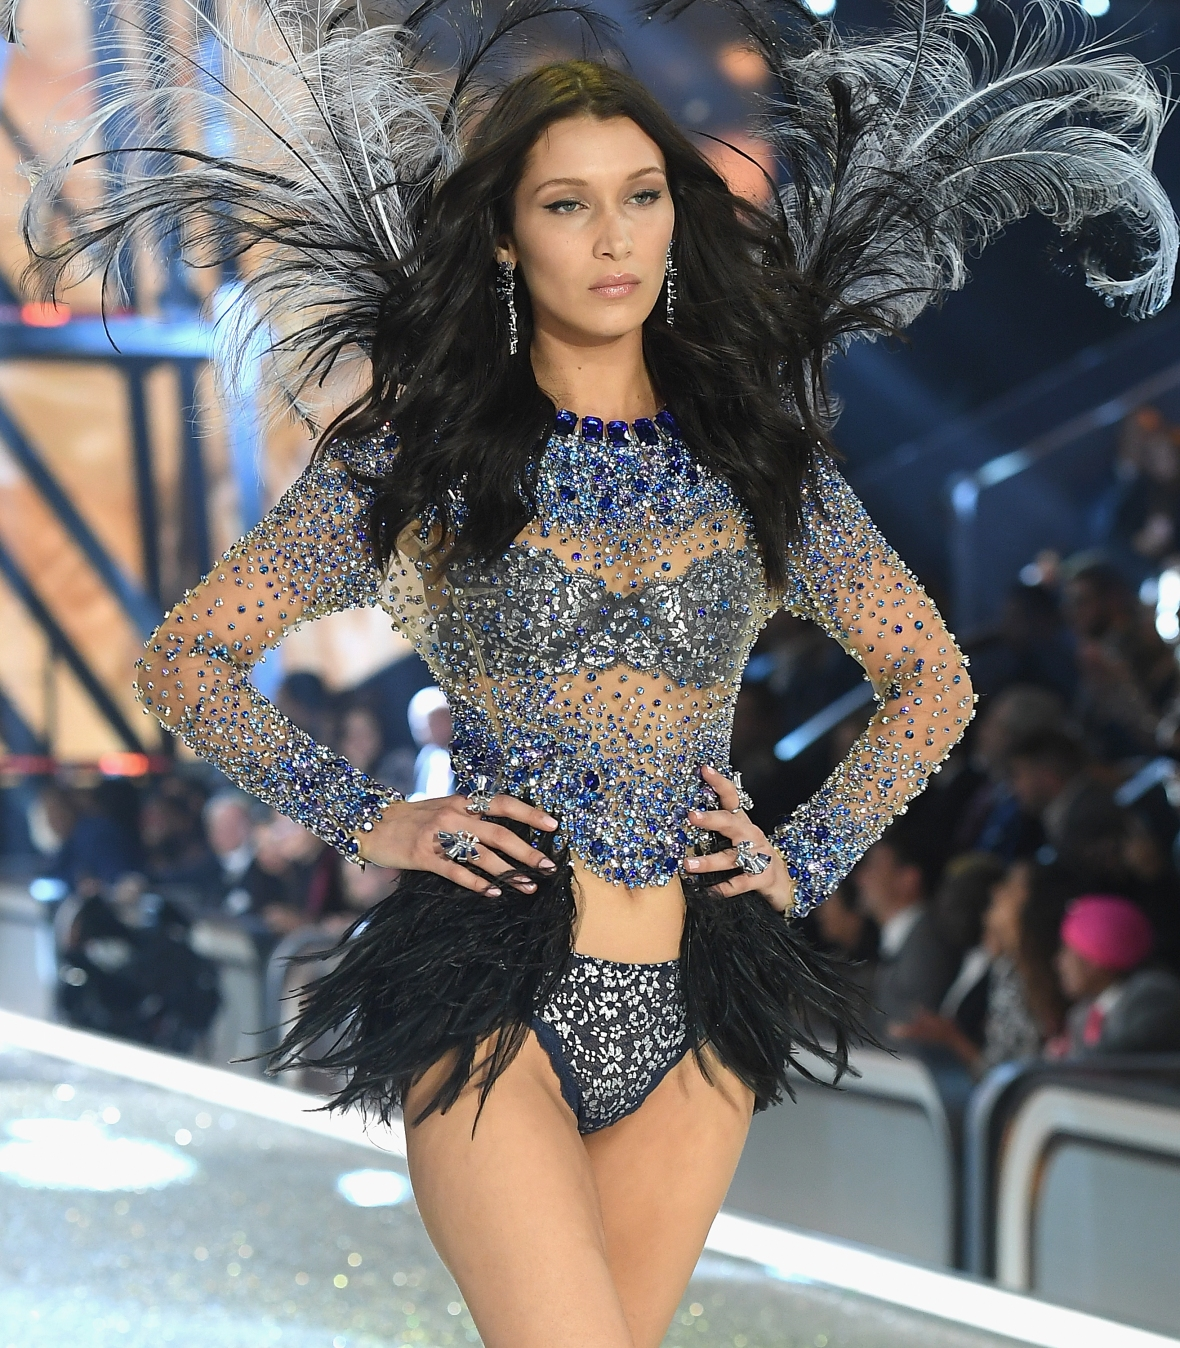 bella hadid victoria's secret 2016 getty